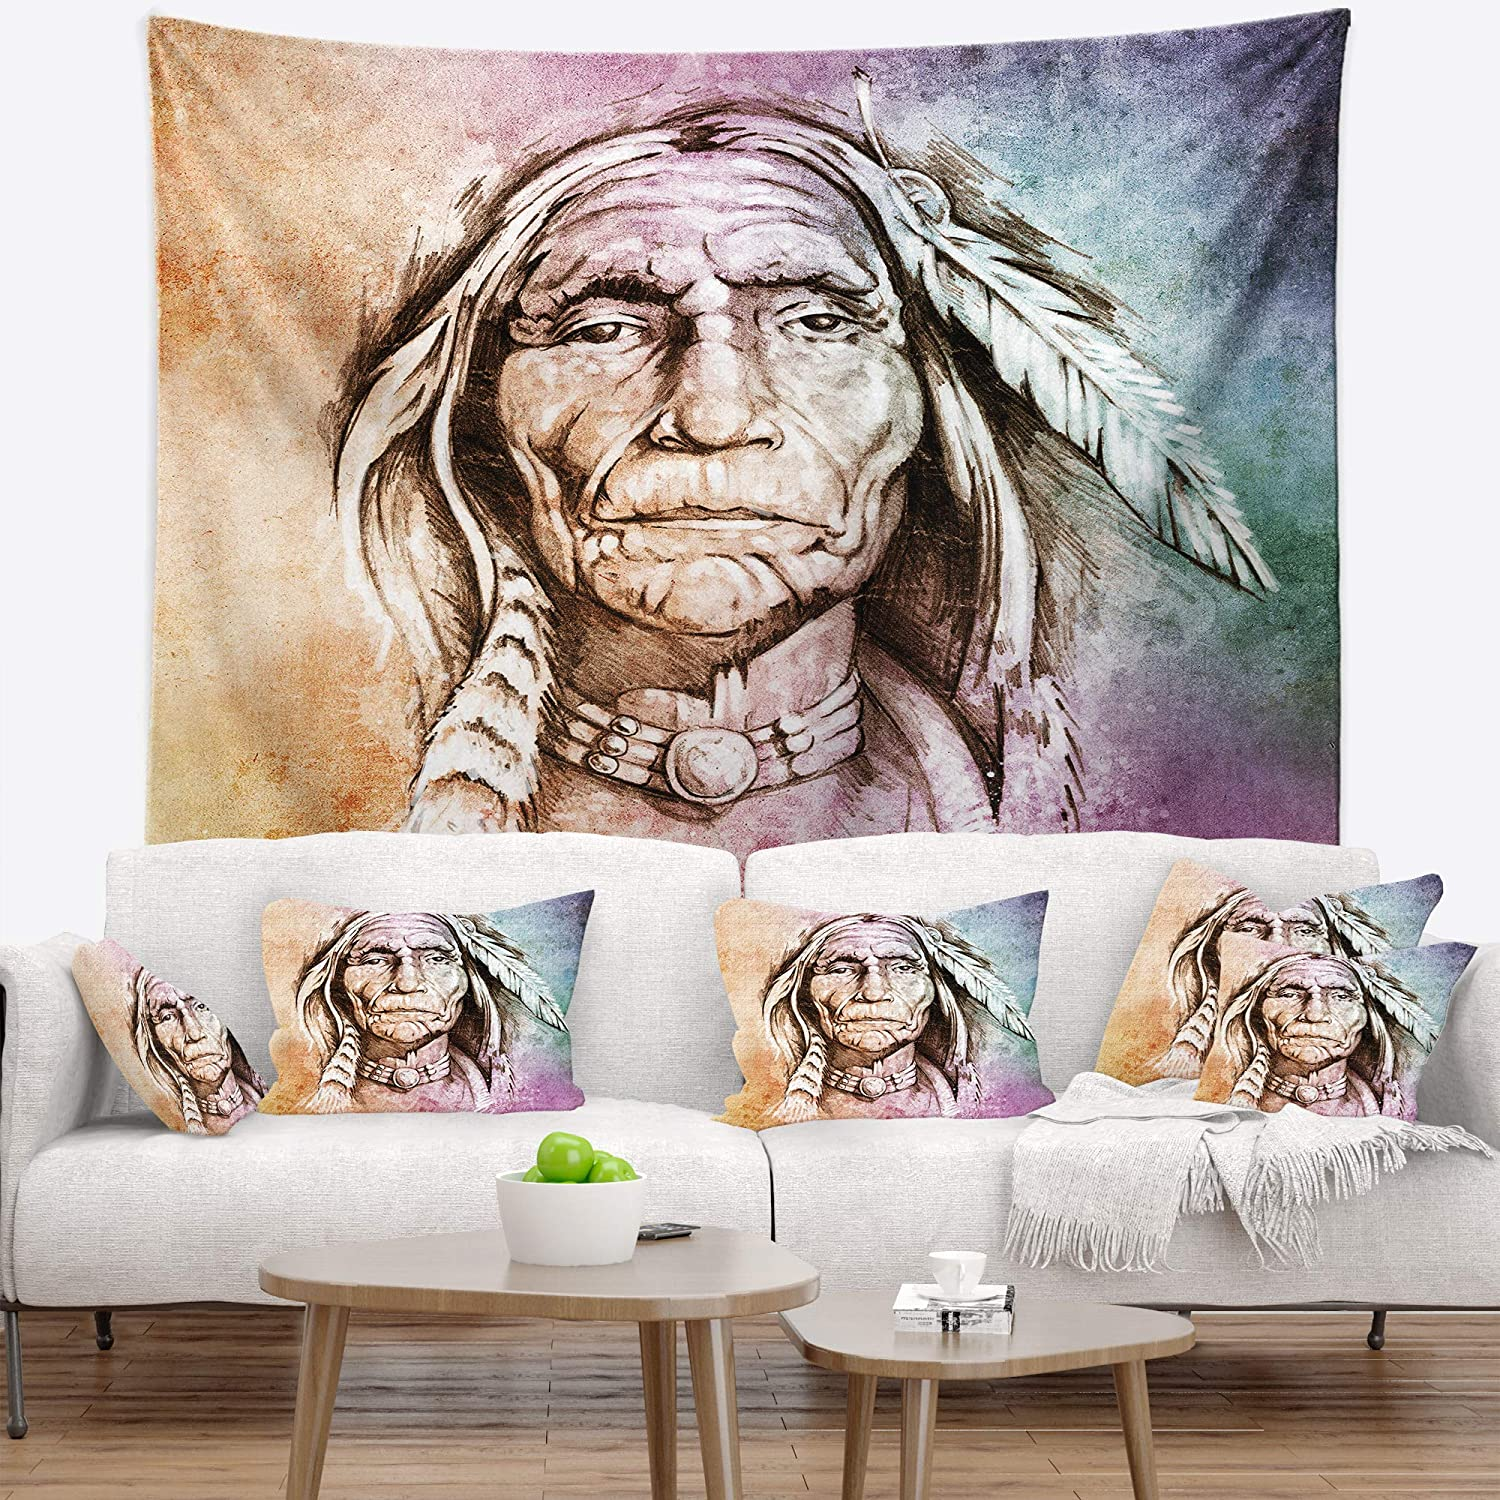 in Designart TAP6271-80-68  American Indian Head Portrait Blanket D/écor Art for Home and Office Wall Tapestry x Large x 68 in 80 in